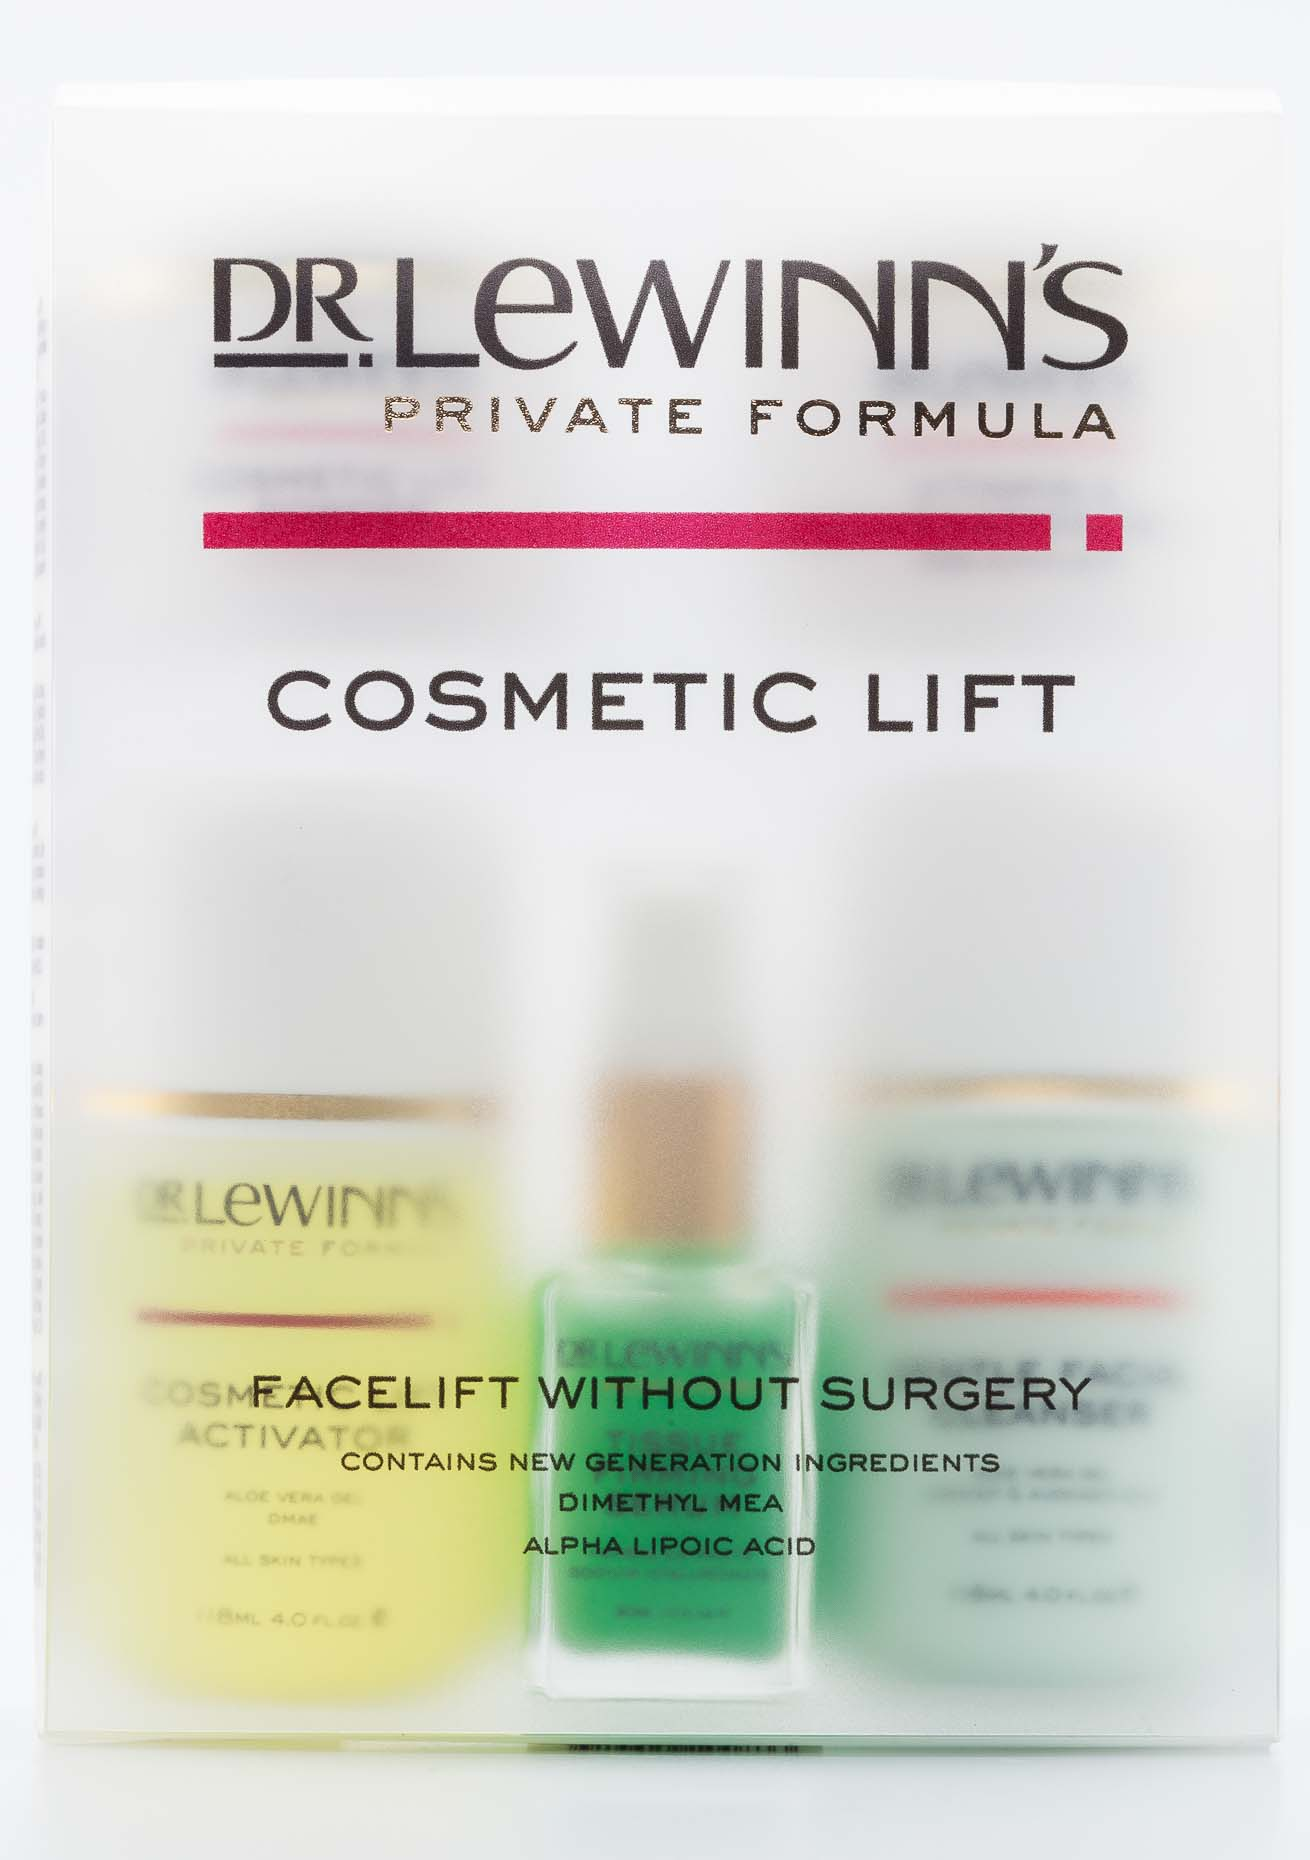 Dr Lewinns Product Shots